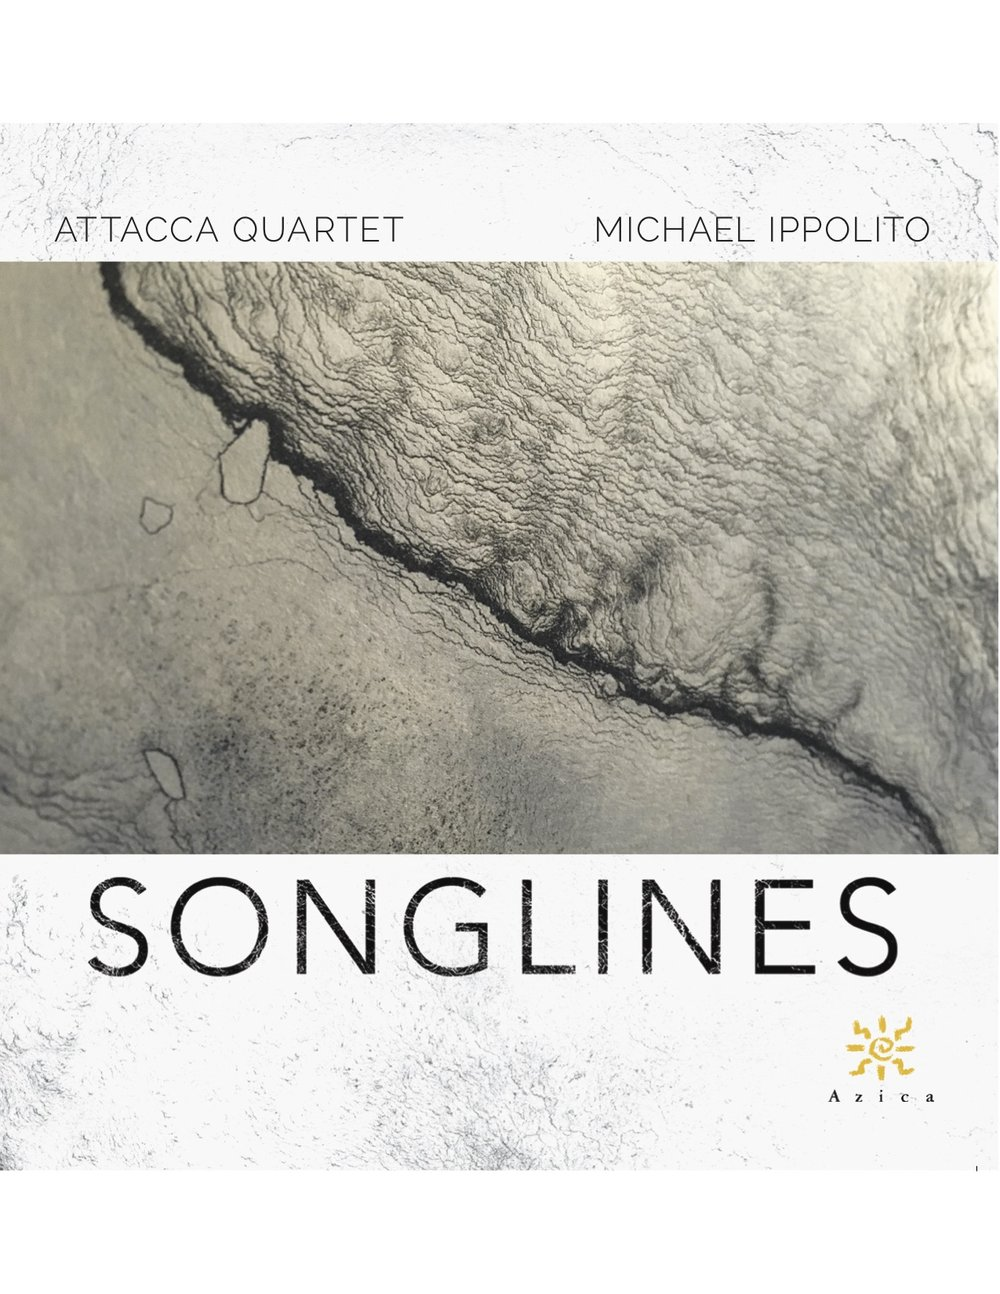 Songlines cover design.jpg